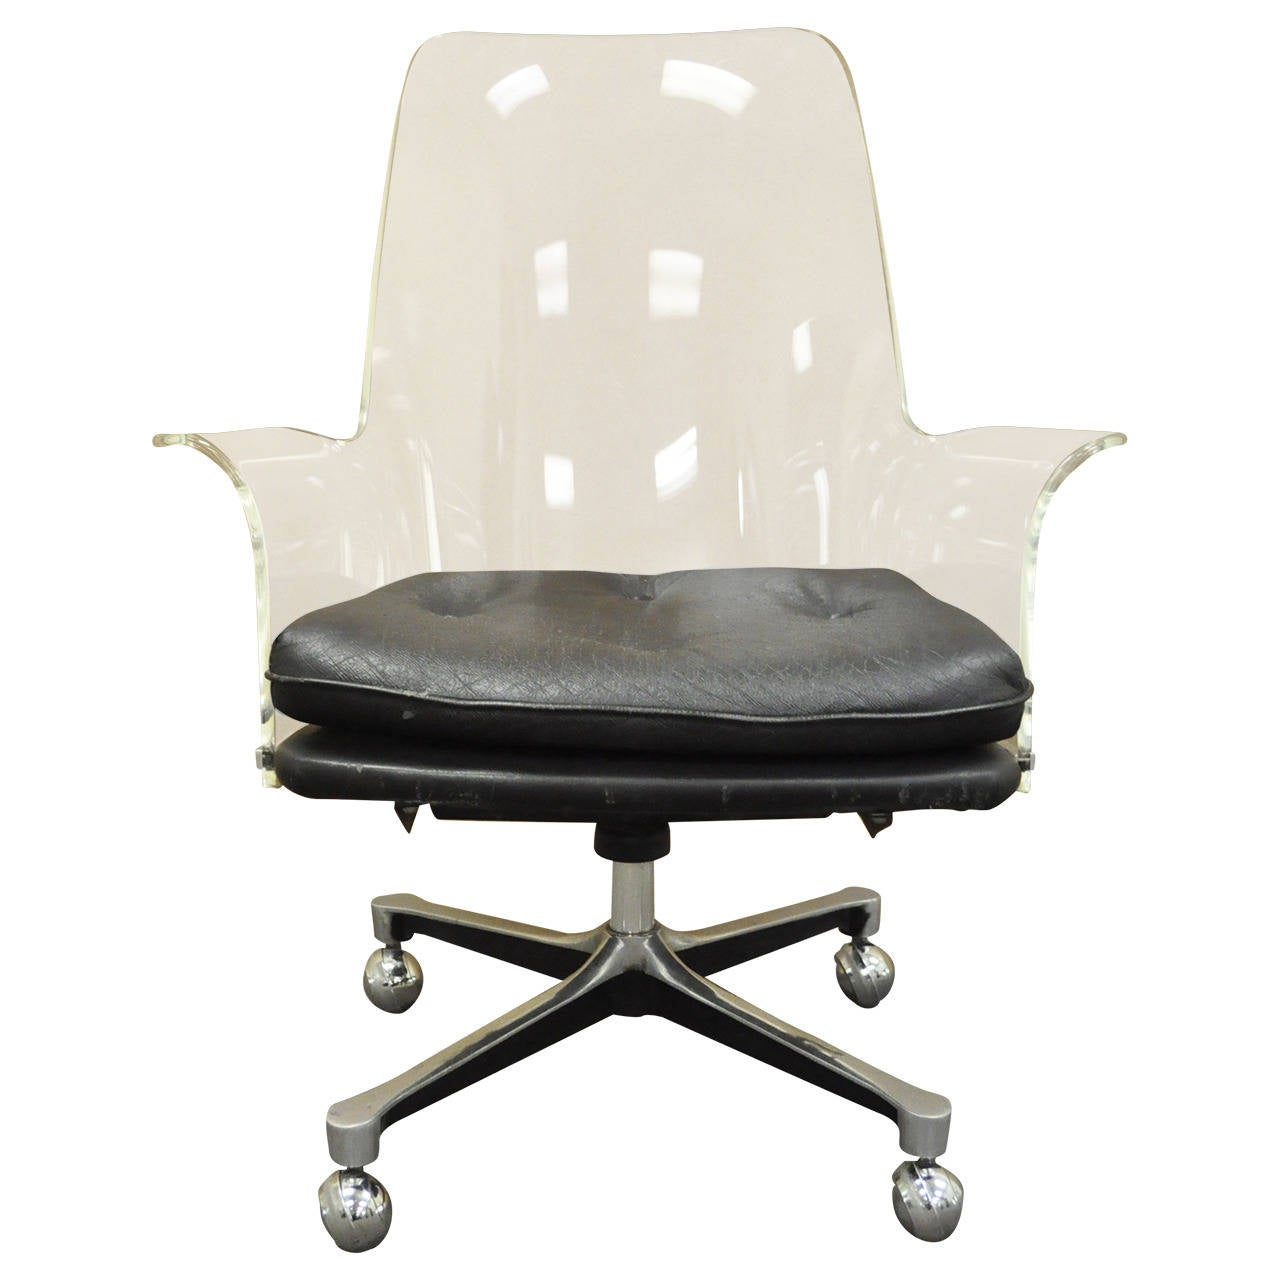 Etonnant 1960s Sculpted Lucite Swivel Desk Chair After Vladimir Kagan And Estelle  Laverne For Sale